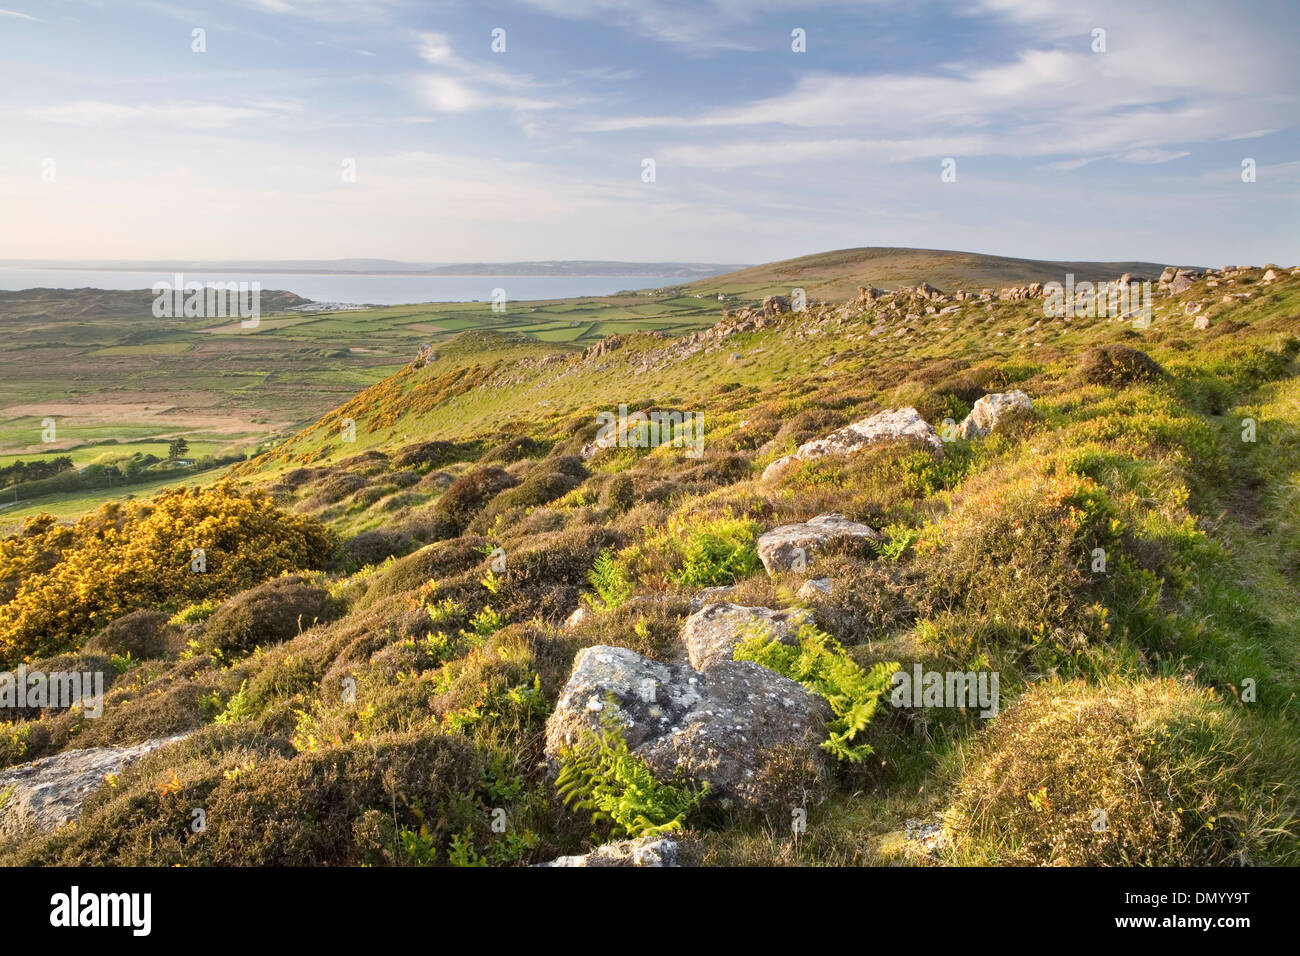 Gorse, bracken and boulders on Rhossili Down near Llangennith, Gower Peninsula, overlook Rhossili Bay at sunset. Stock Photo